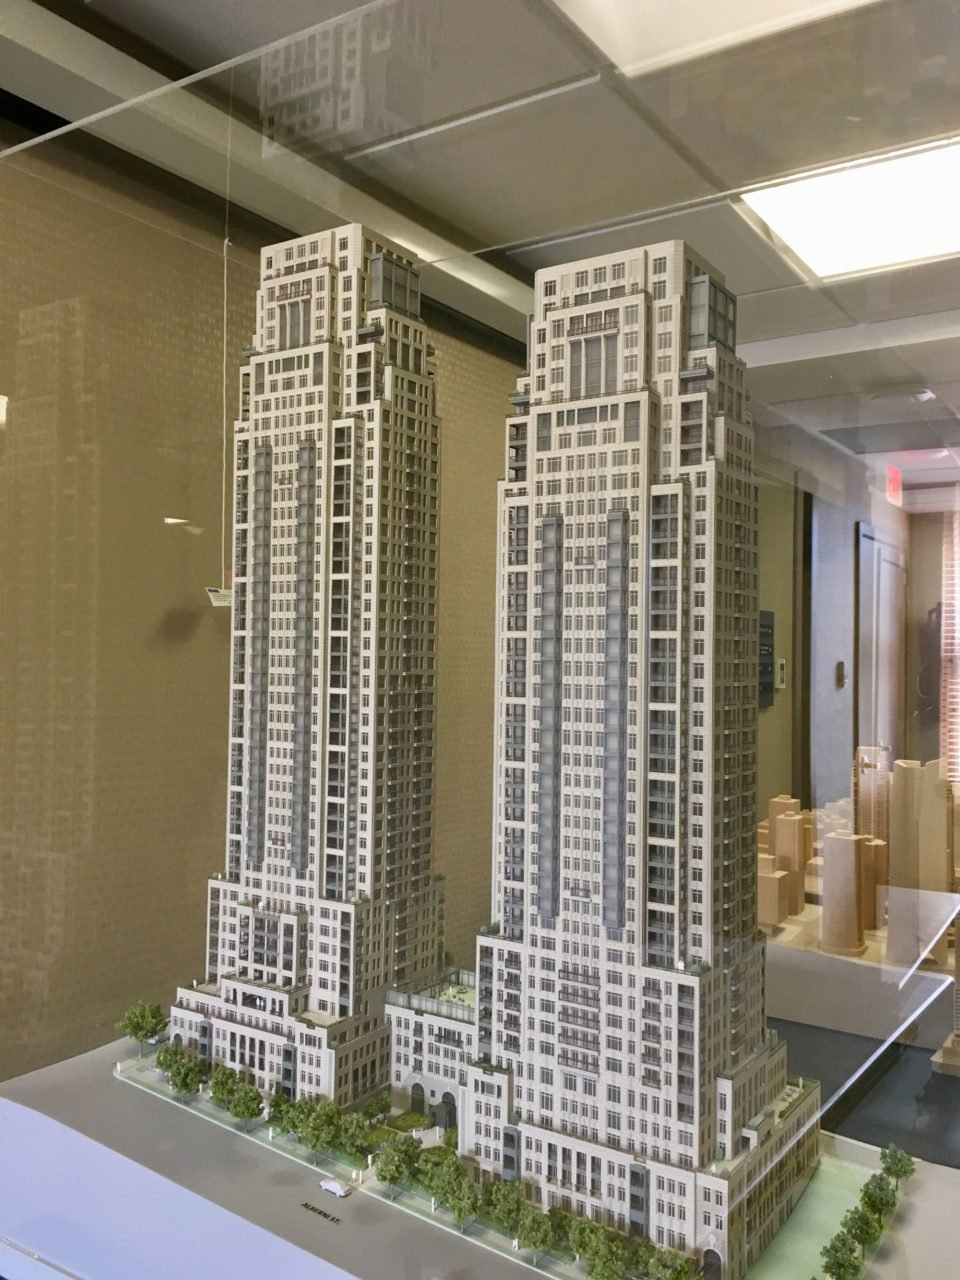 New models of NYC-inspired towers at 1444 Alberni Street